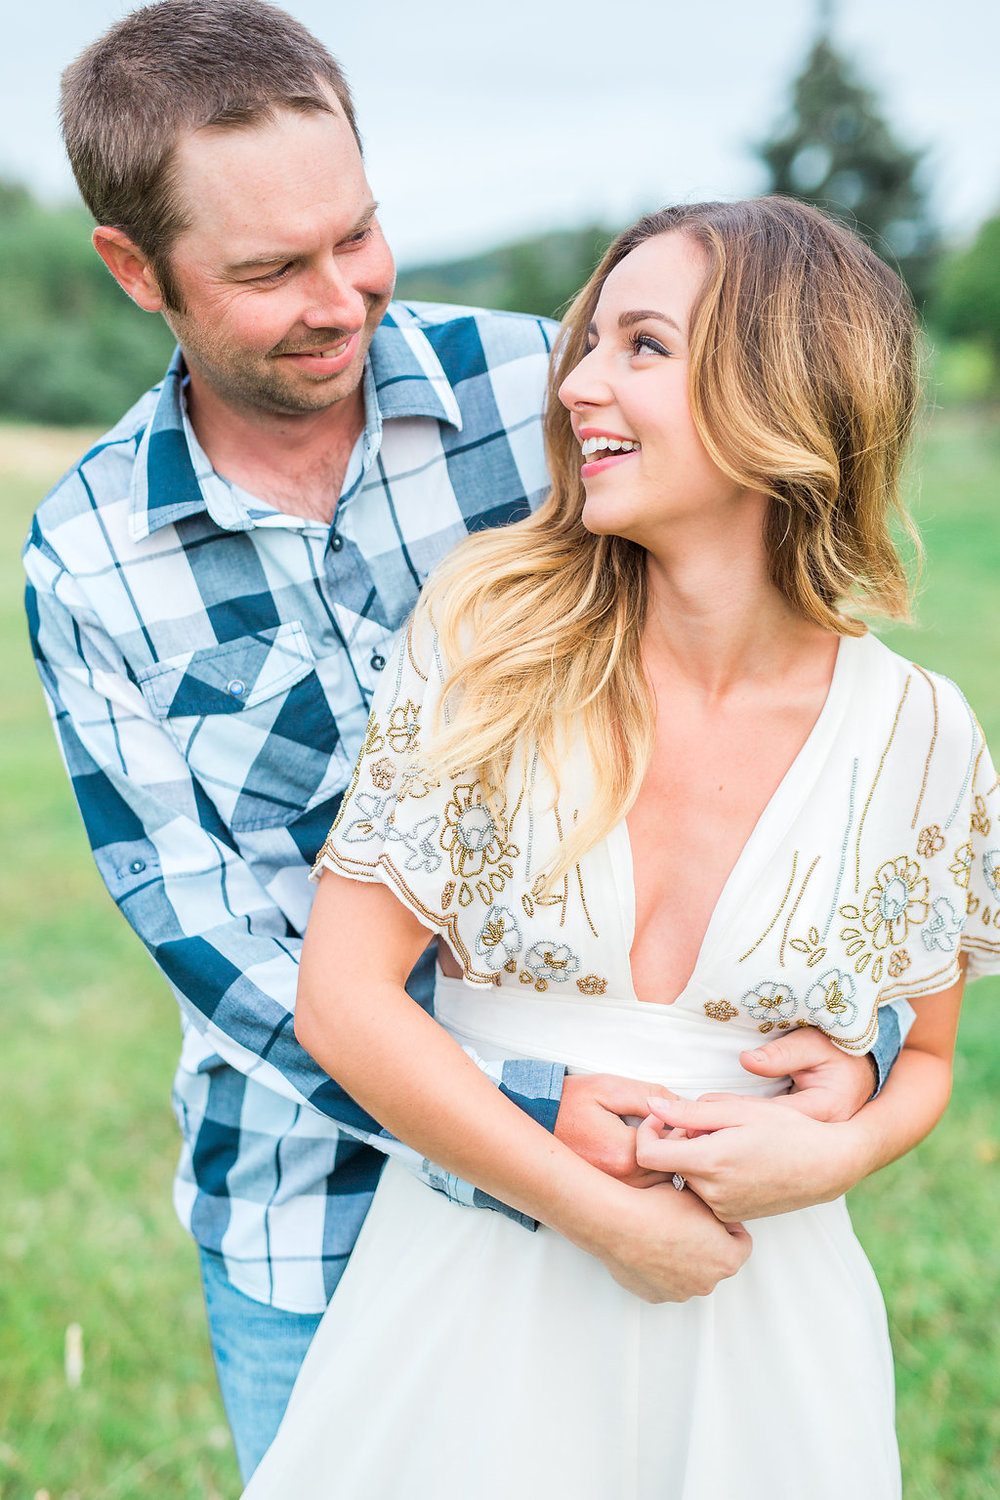 Beautiful outdoor engagement session | What to wear | Photo Inspiration | Engagement session | Portrait | White | Detail Shots | Mastin Labs | Engaged | Fuji 400 | Arms Around Girl